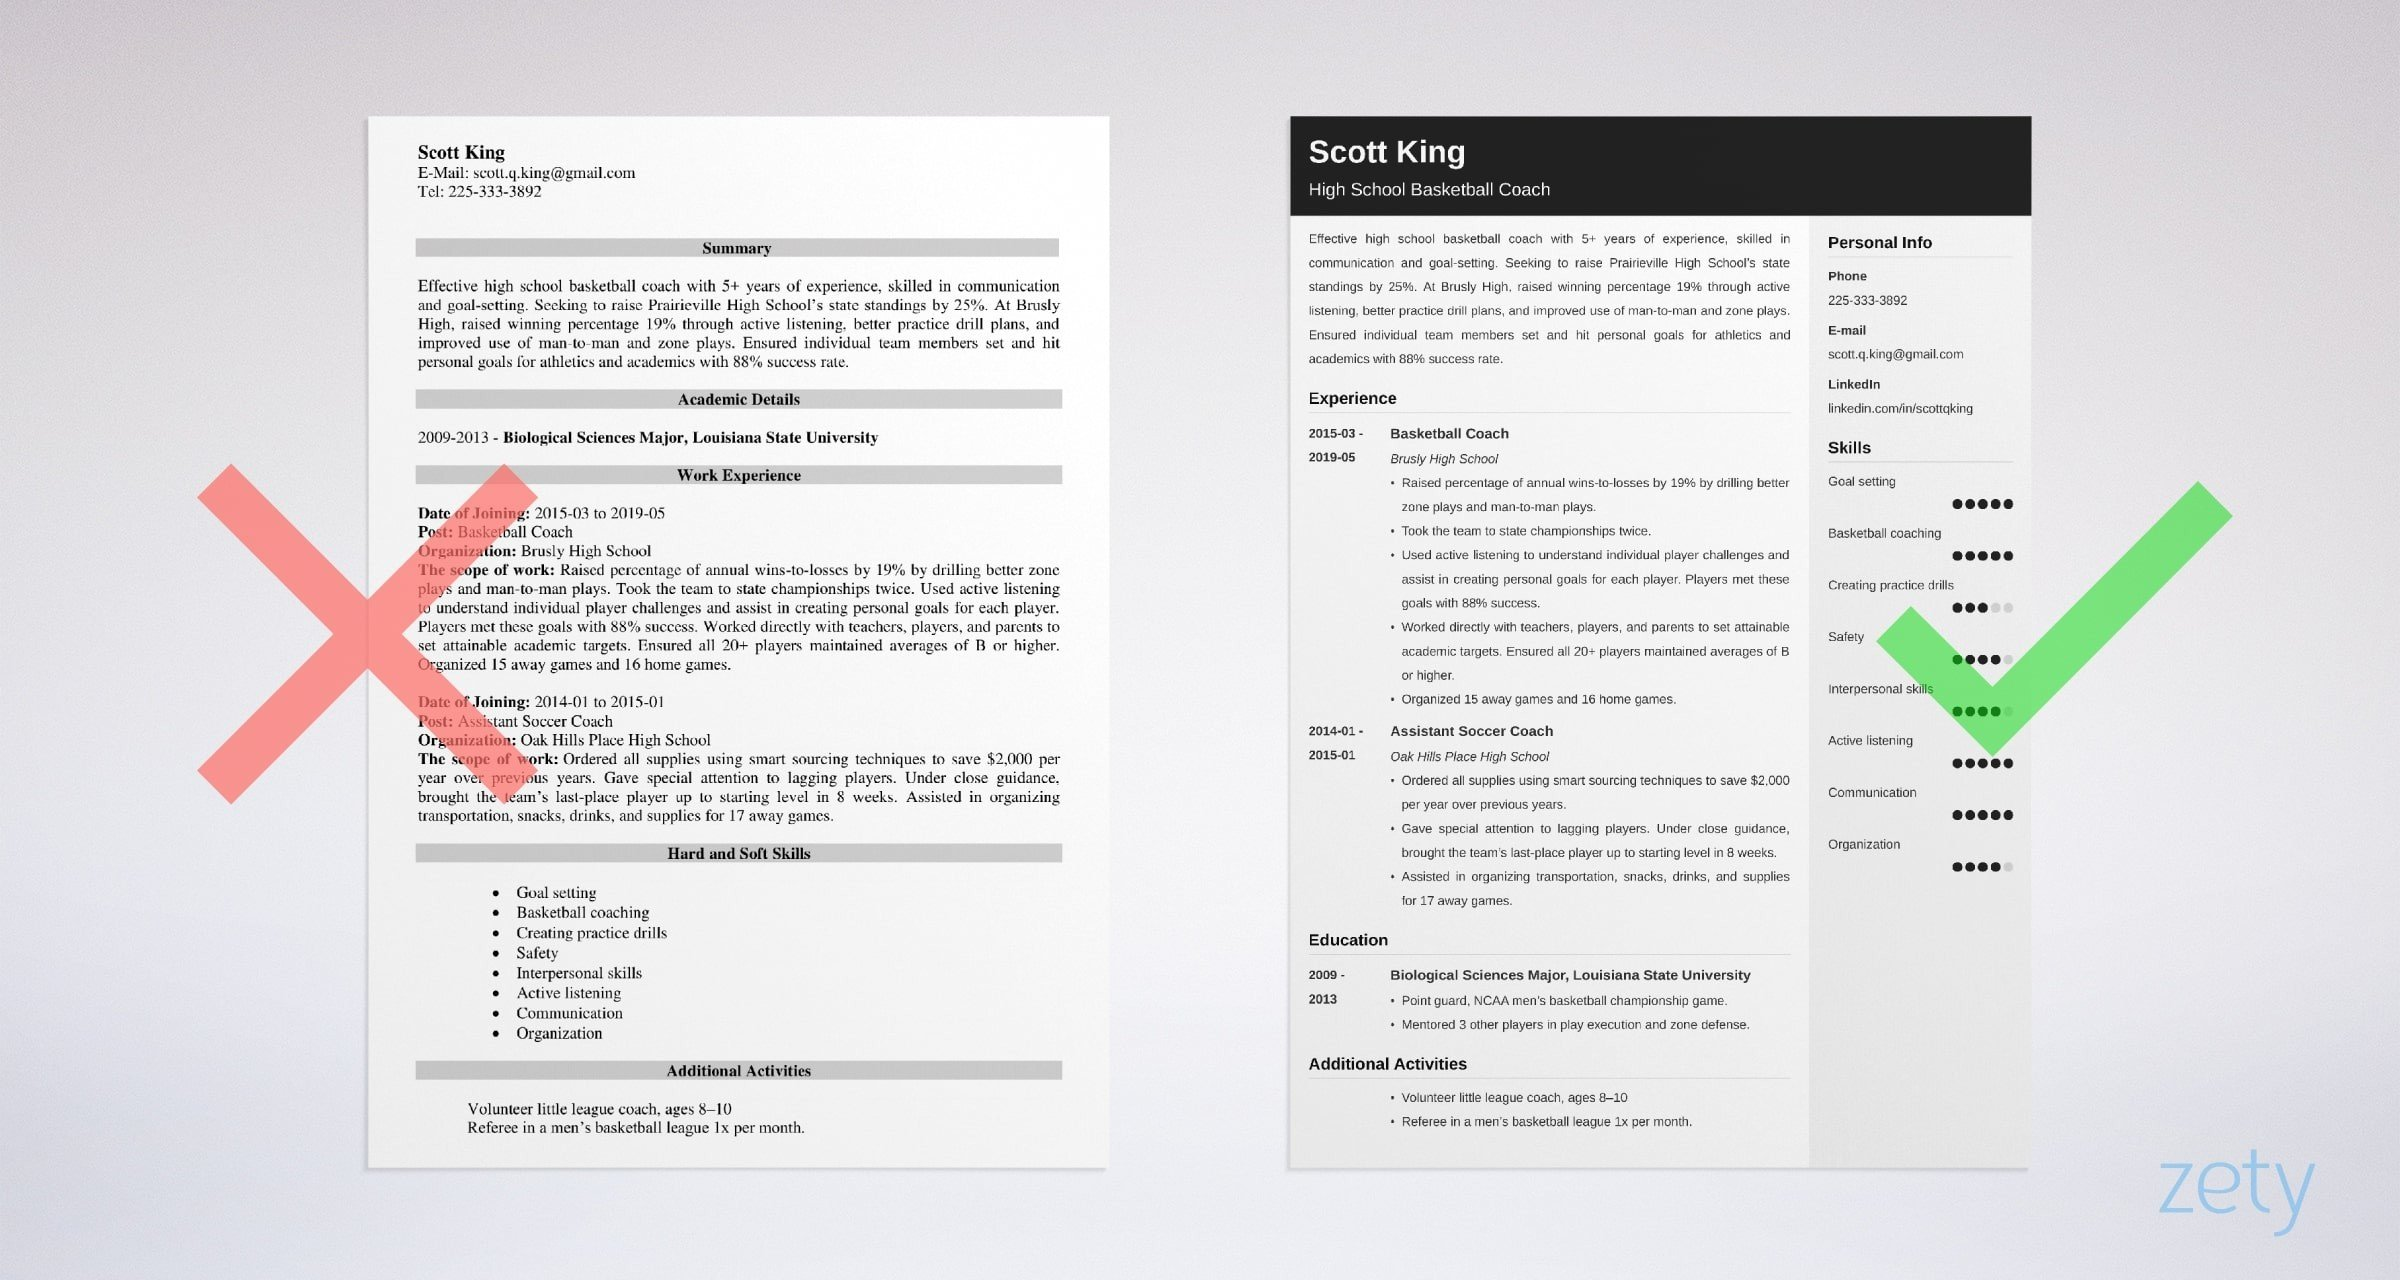 coaching resume samples also for high school coach jobs basketball example personal Resume Basketball Coach Resume